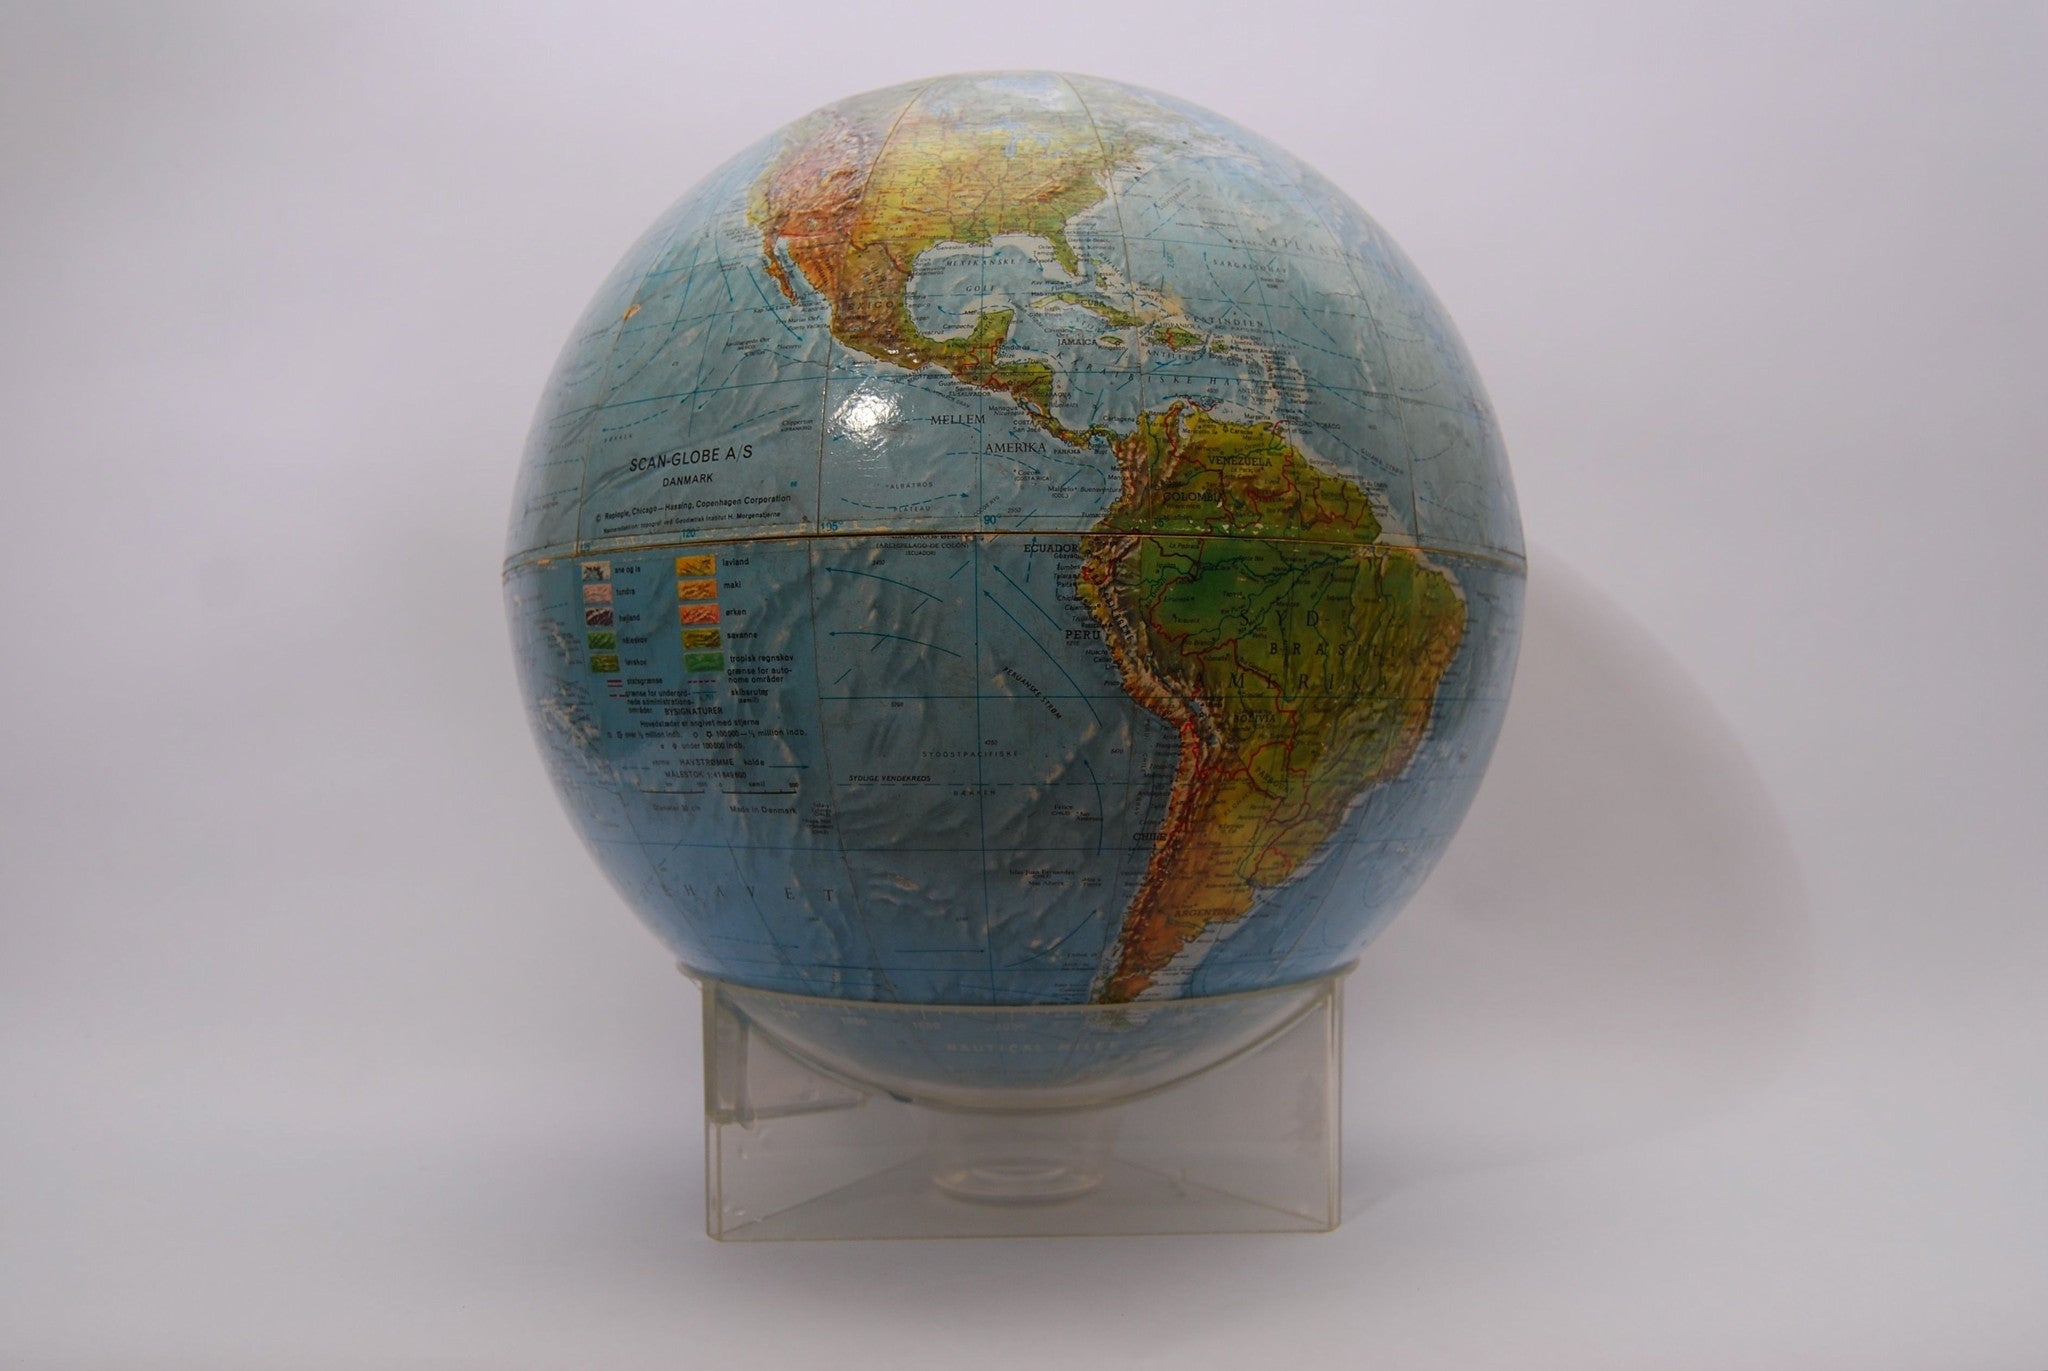 Globe on acrylic base